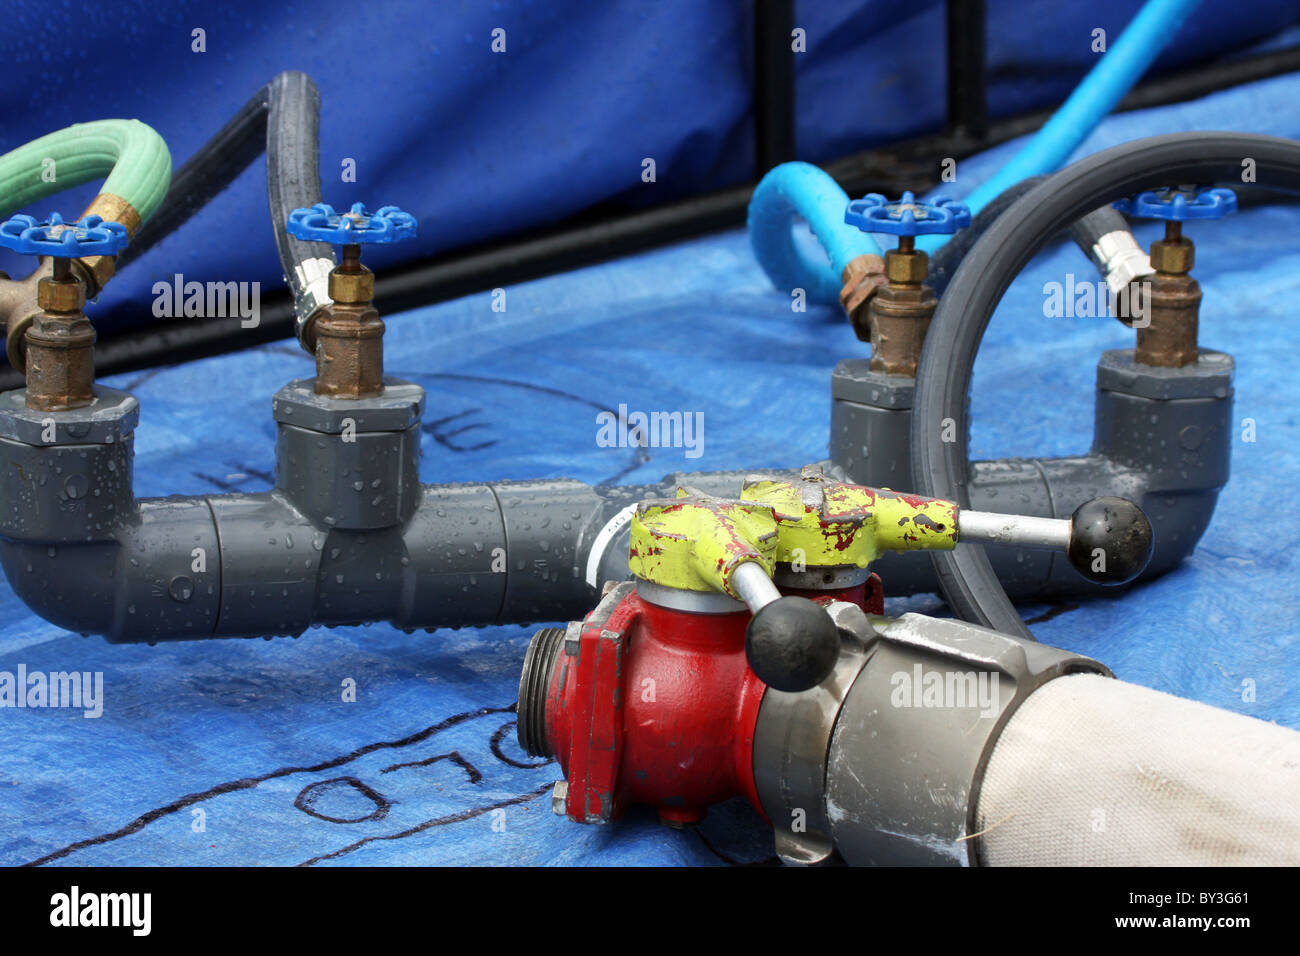 Valves on a hose line in a tub for chemical washoff from a hazardous ...